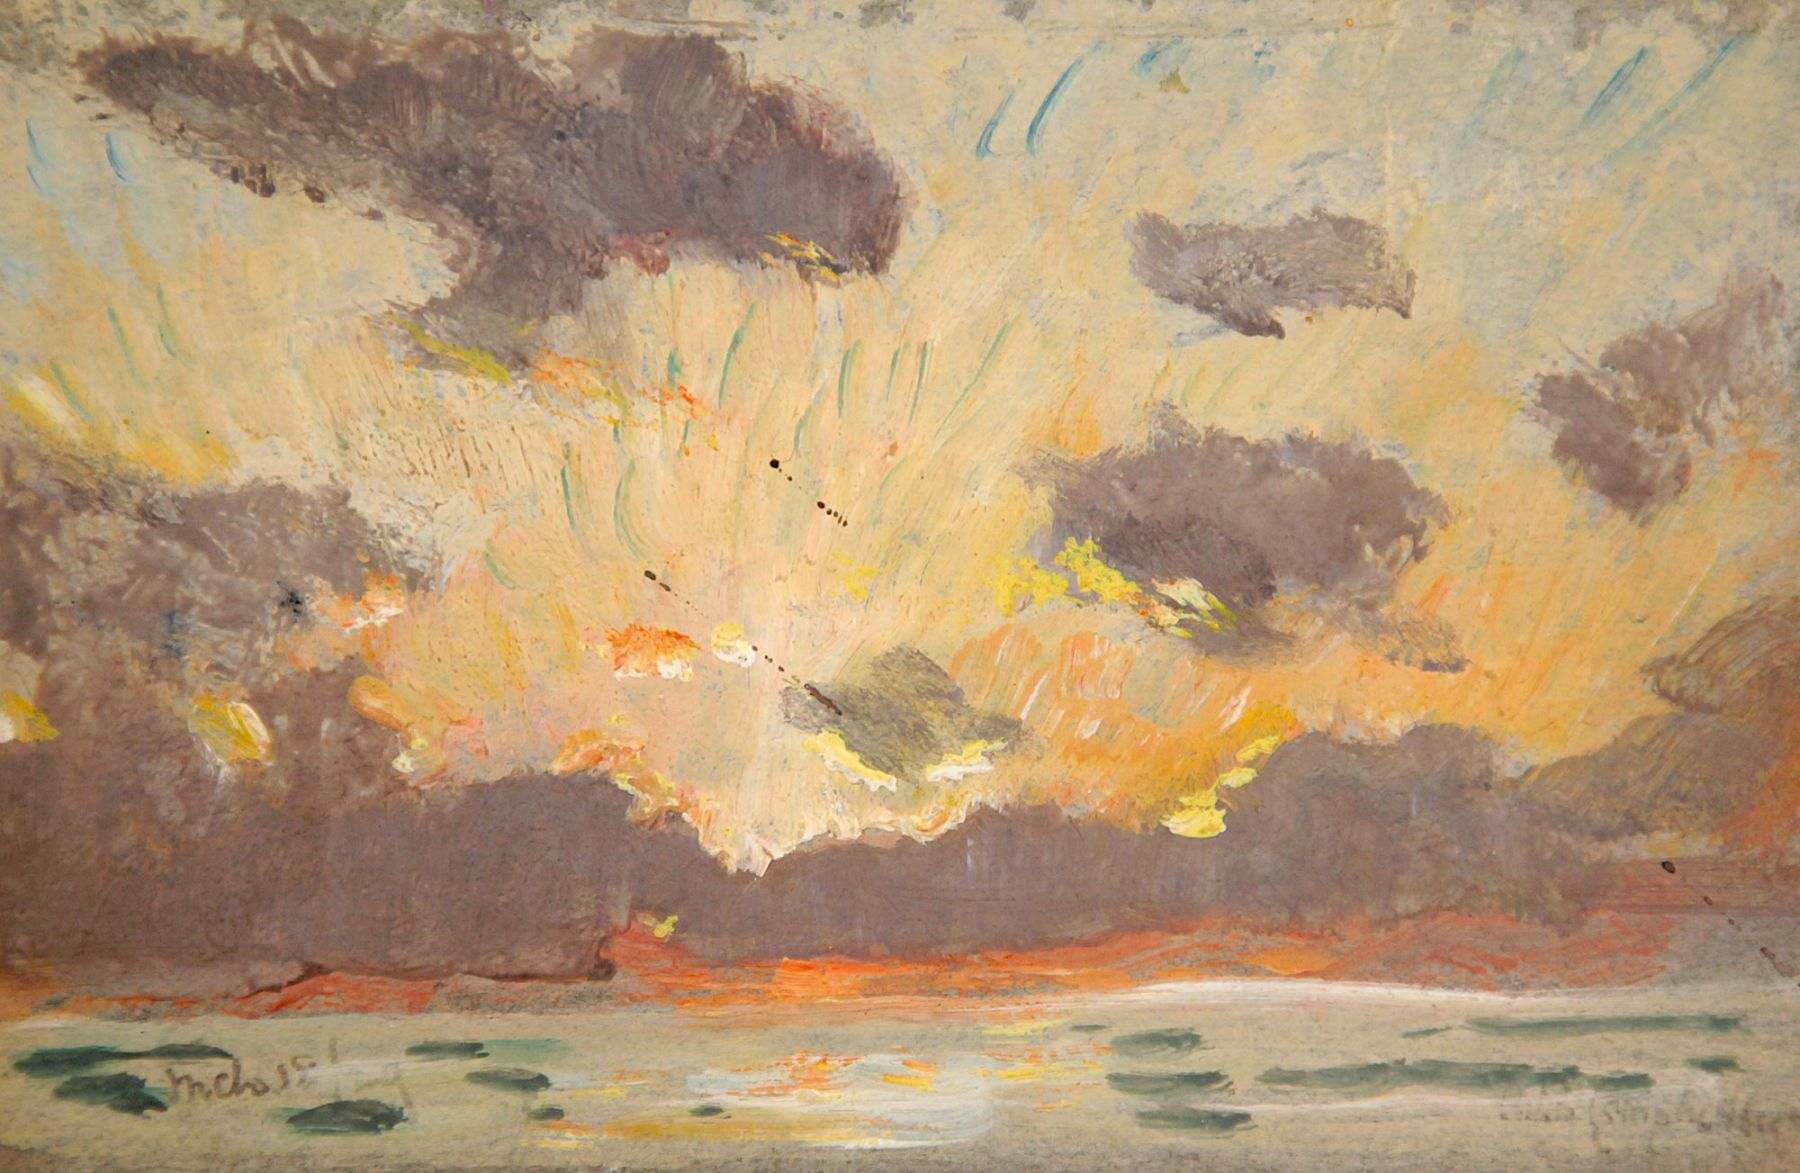 COLIN CAMPBELL COOPER, Sunset with Green Rays over Ocean, 1929